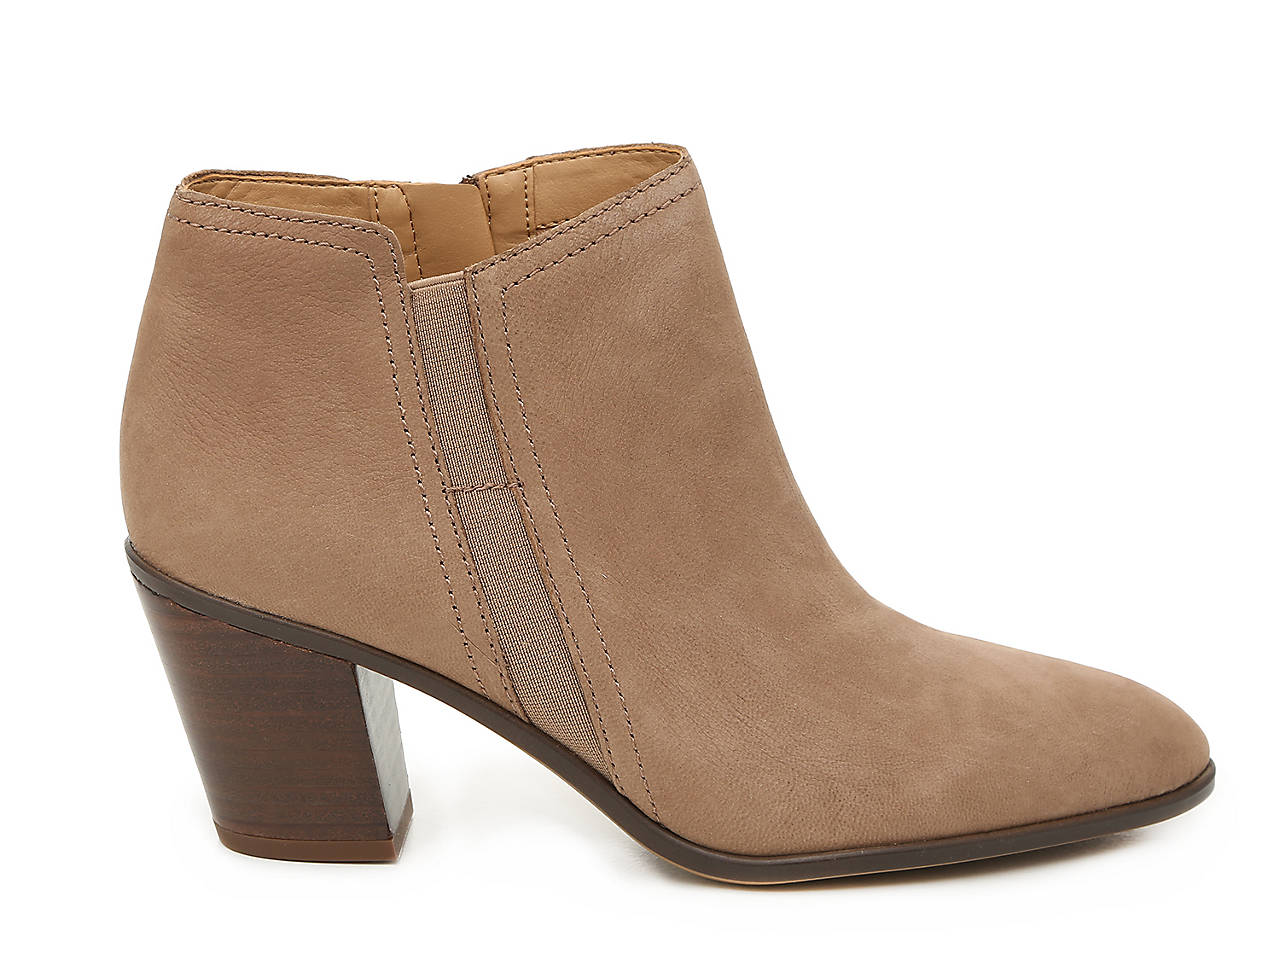 a252b6ef2 Home · Women's Shoes · Boots; Odeon Bootie. previous. Odeon Bootie. next